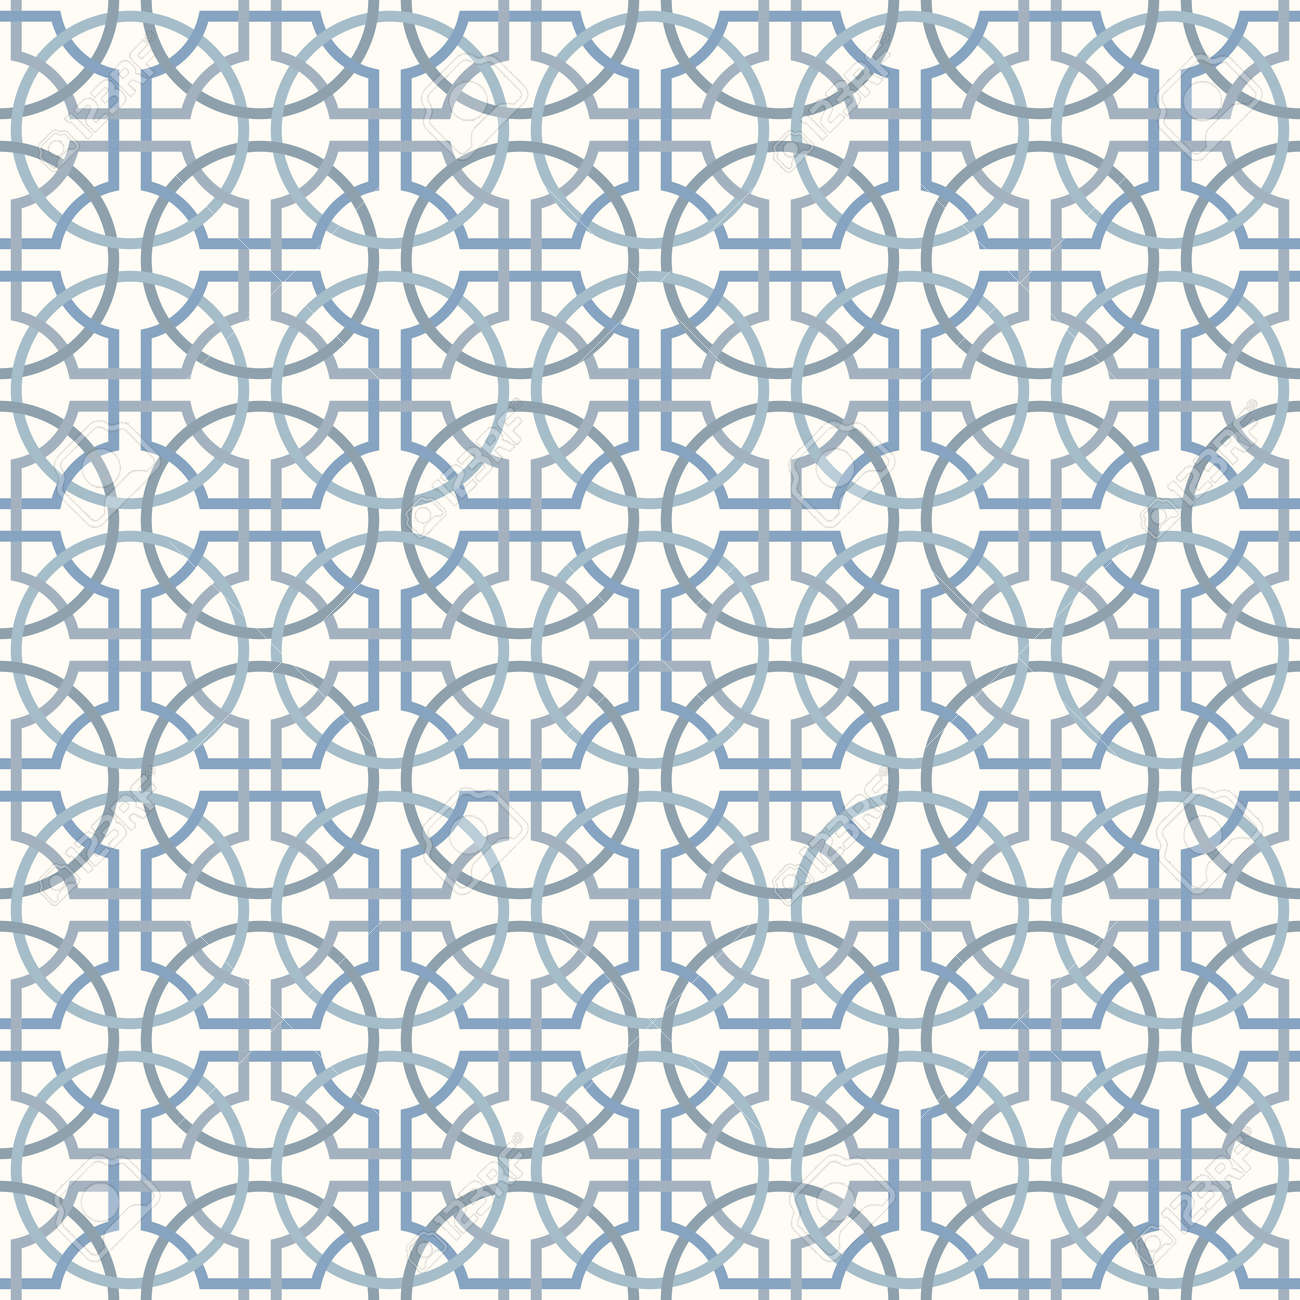 Tangled Modern Pattern, Based On Traditional Oriental Arabic ... for Modern Arabic Pattern Vector  66pct